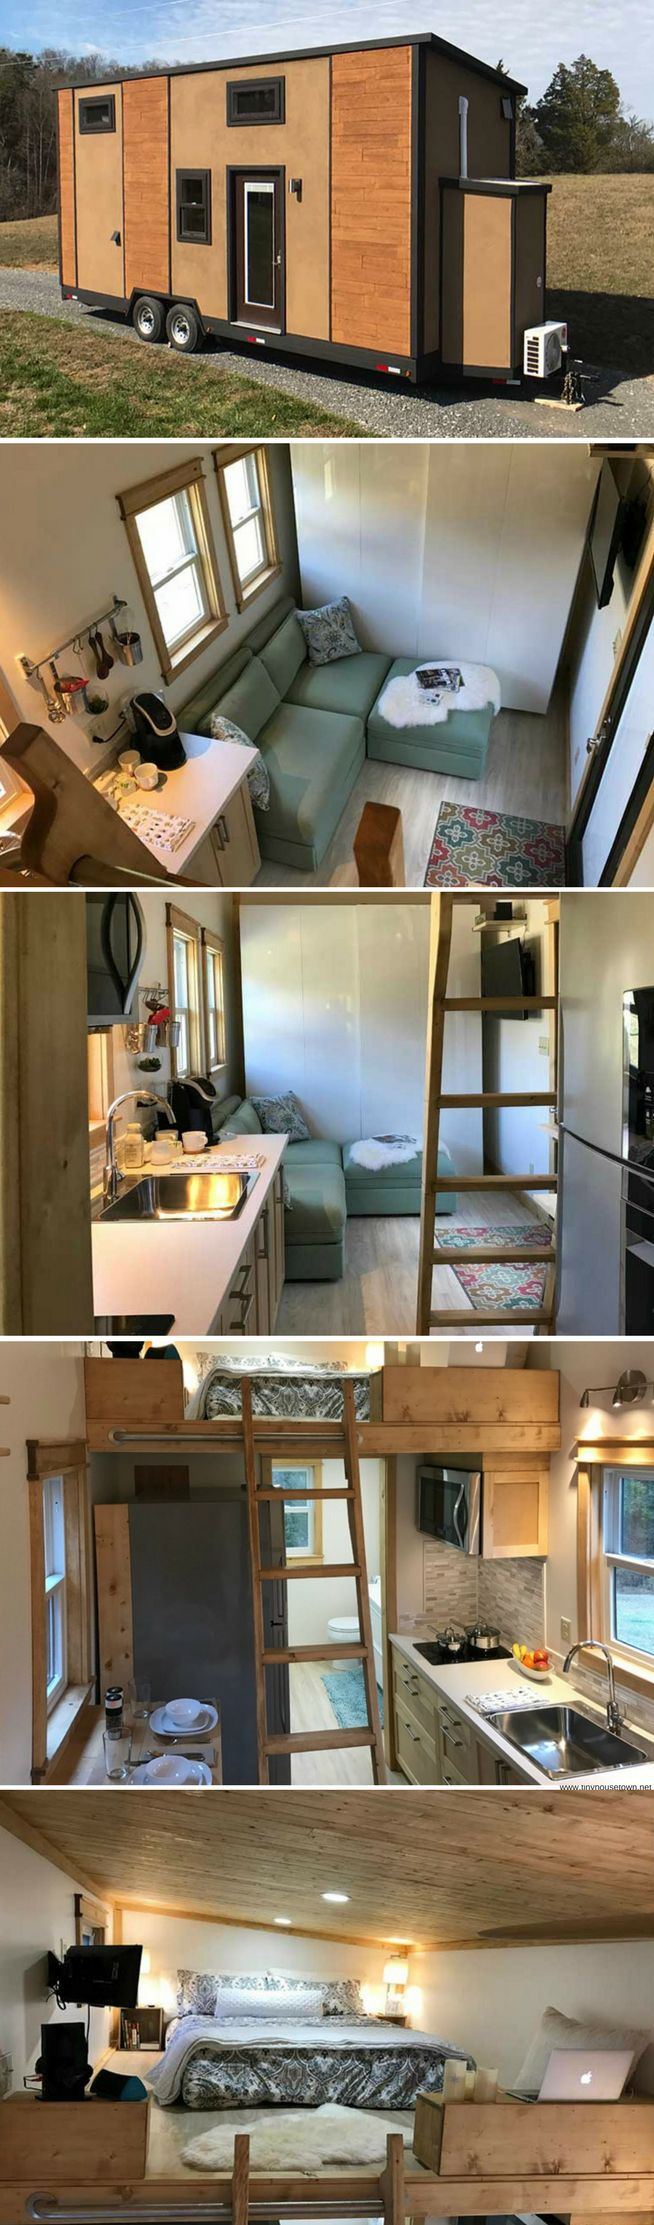 The Amsterdam 24: a 292 sq ft house from Transcend Tiny Homes